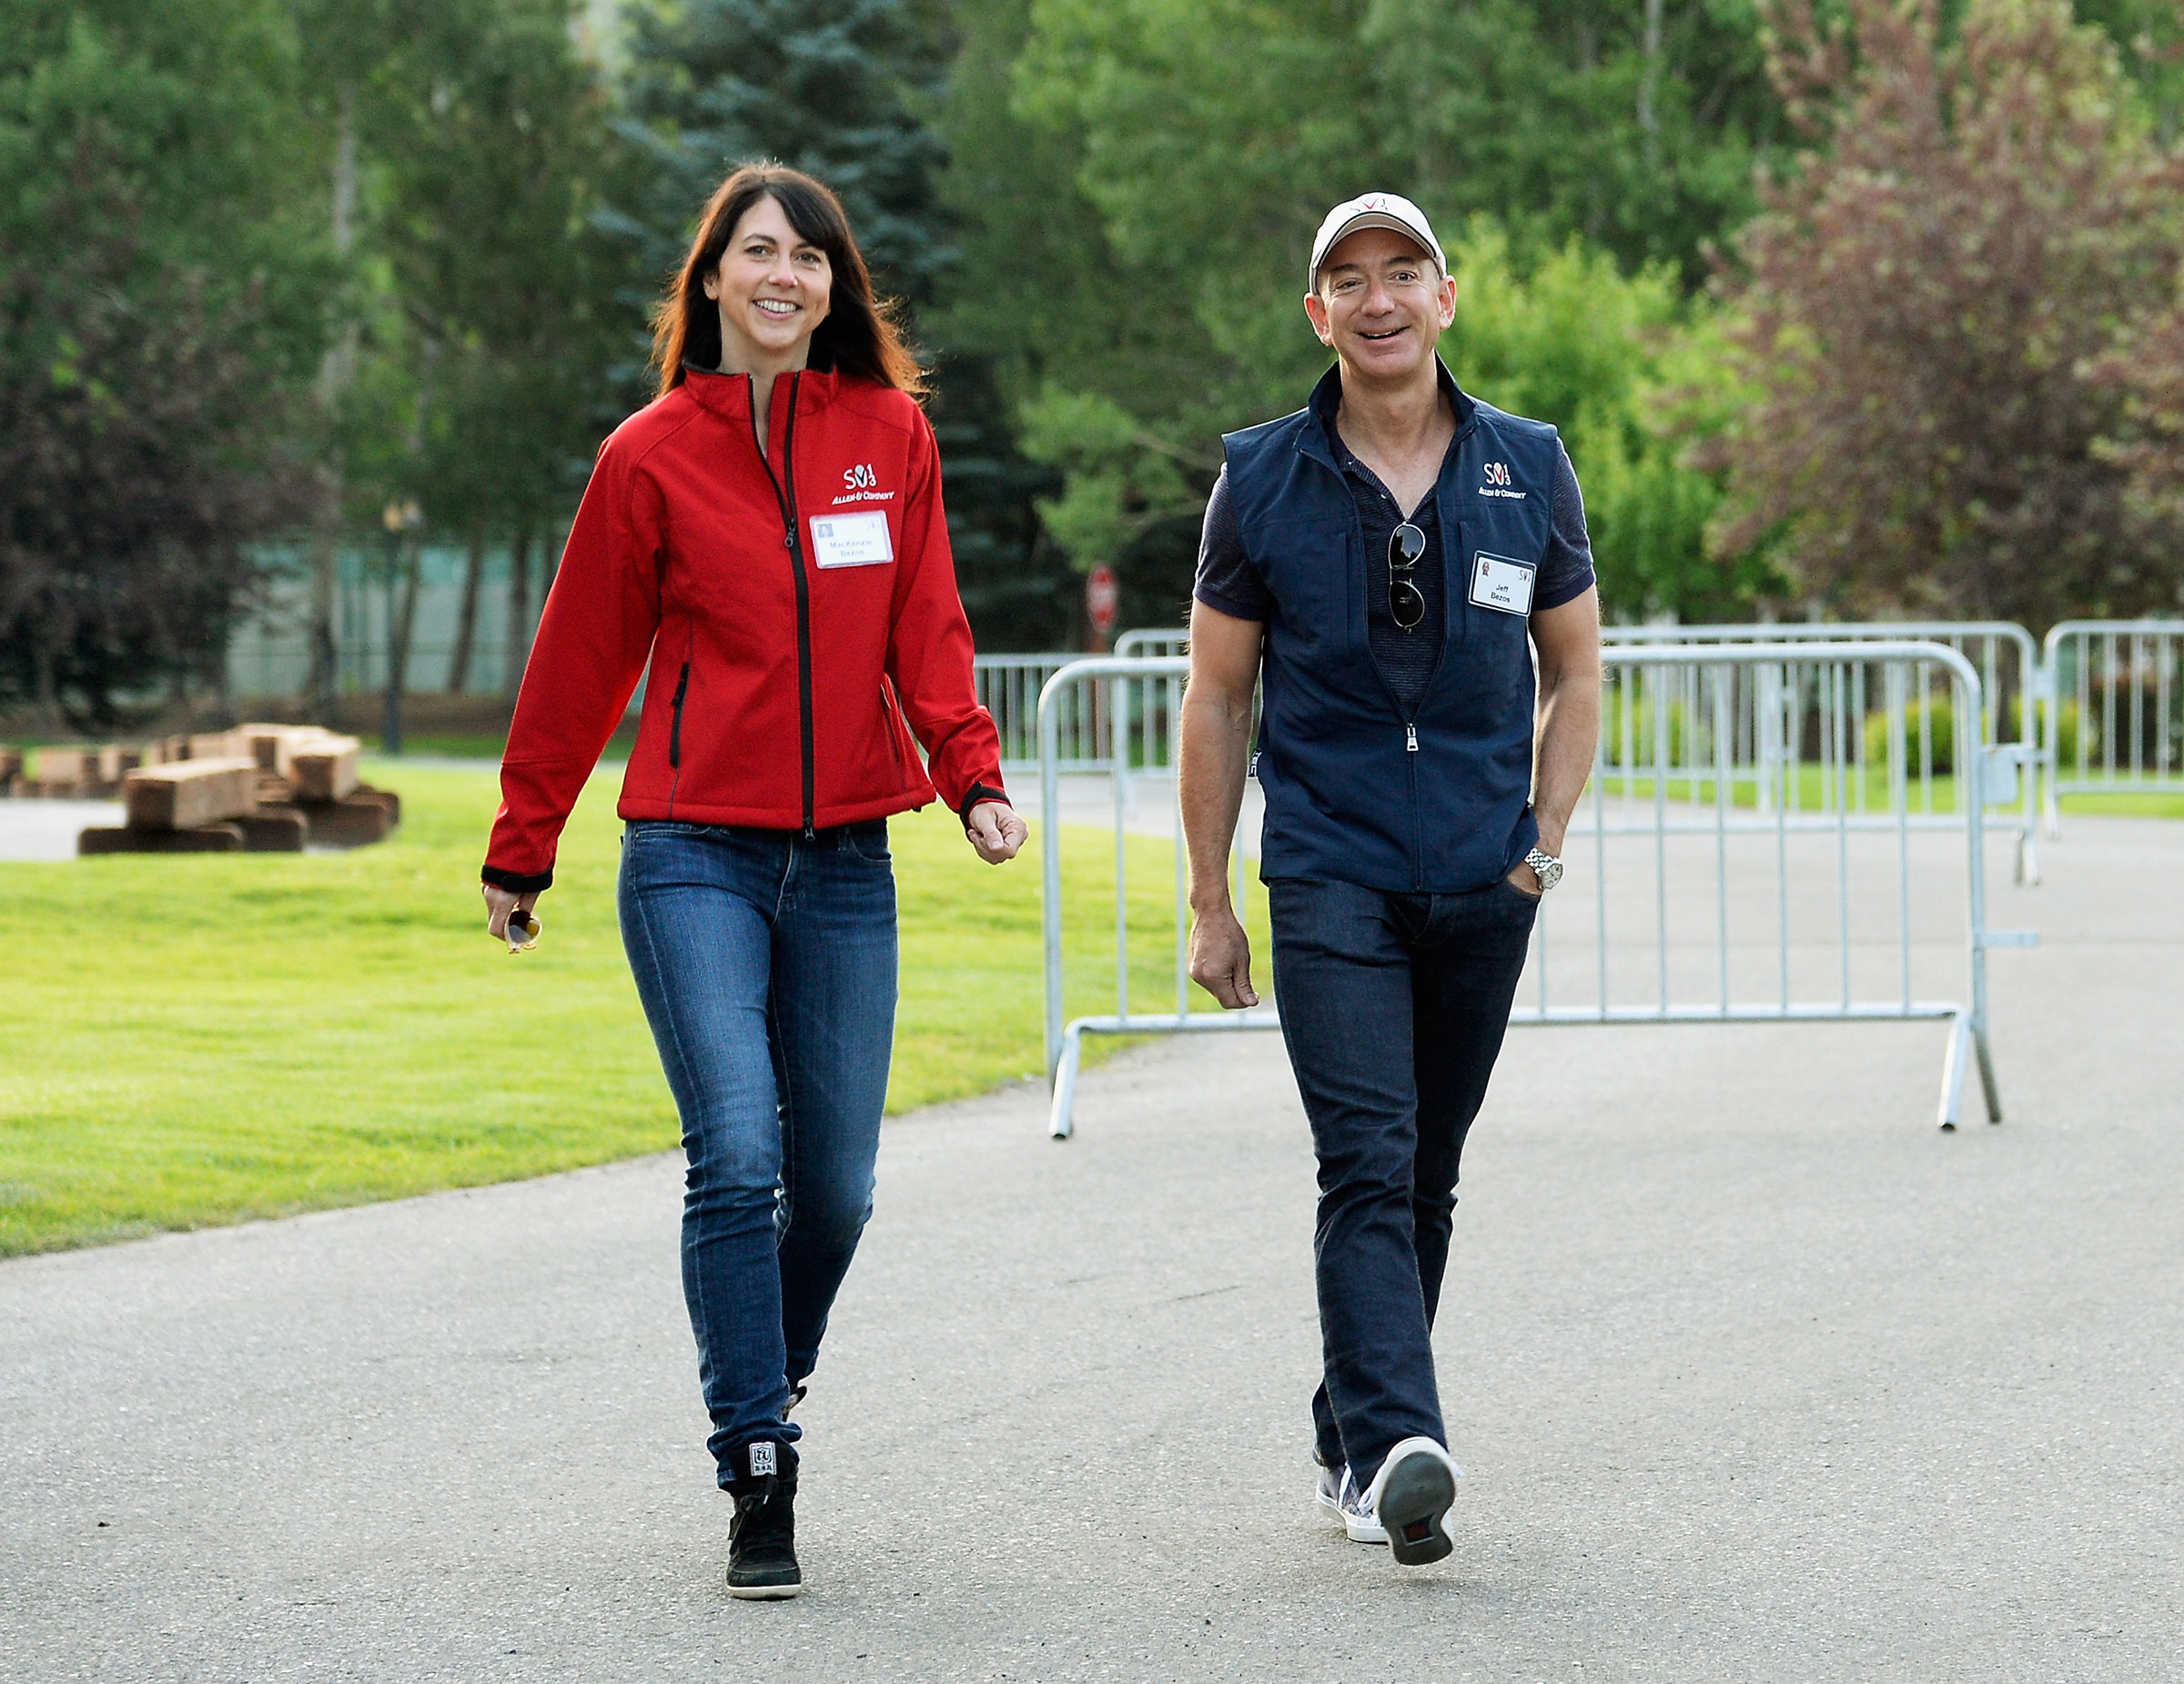 MacKenzie Scott and Jeff Bezos in Sun Valley, Idaho for the Allen & Co. annual conference on July 10, 2013.